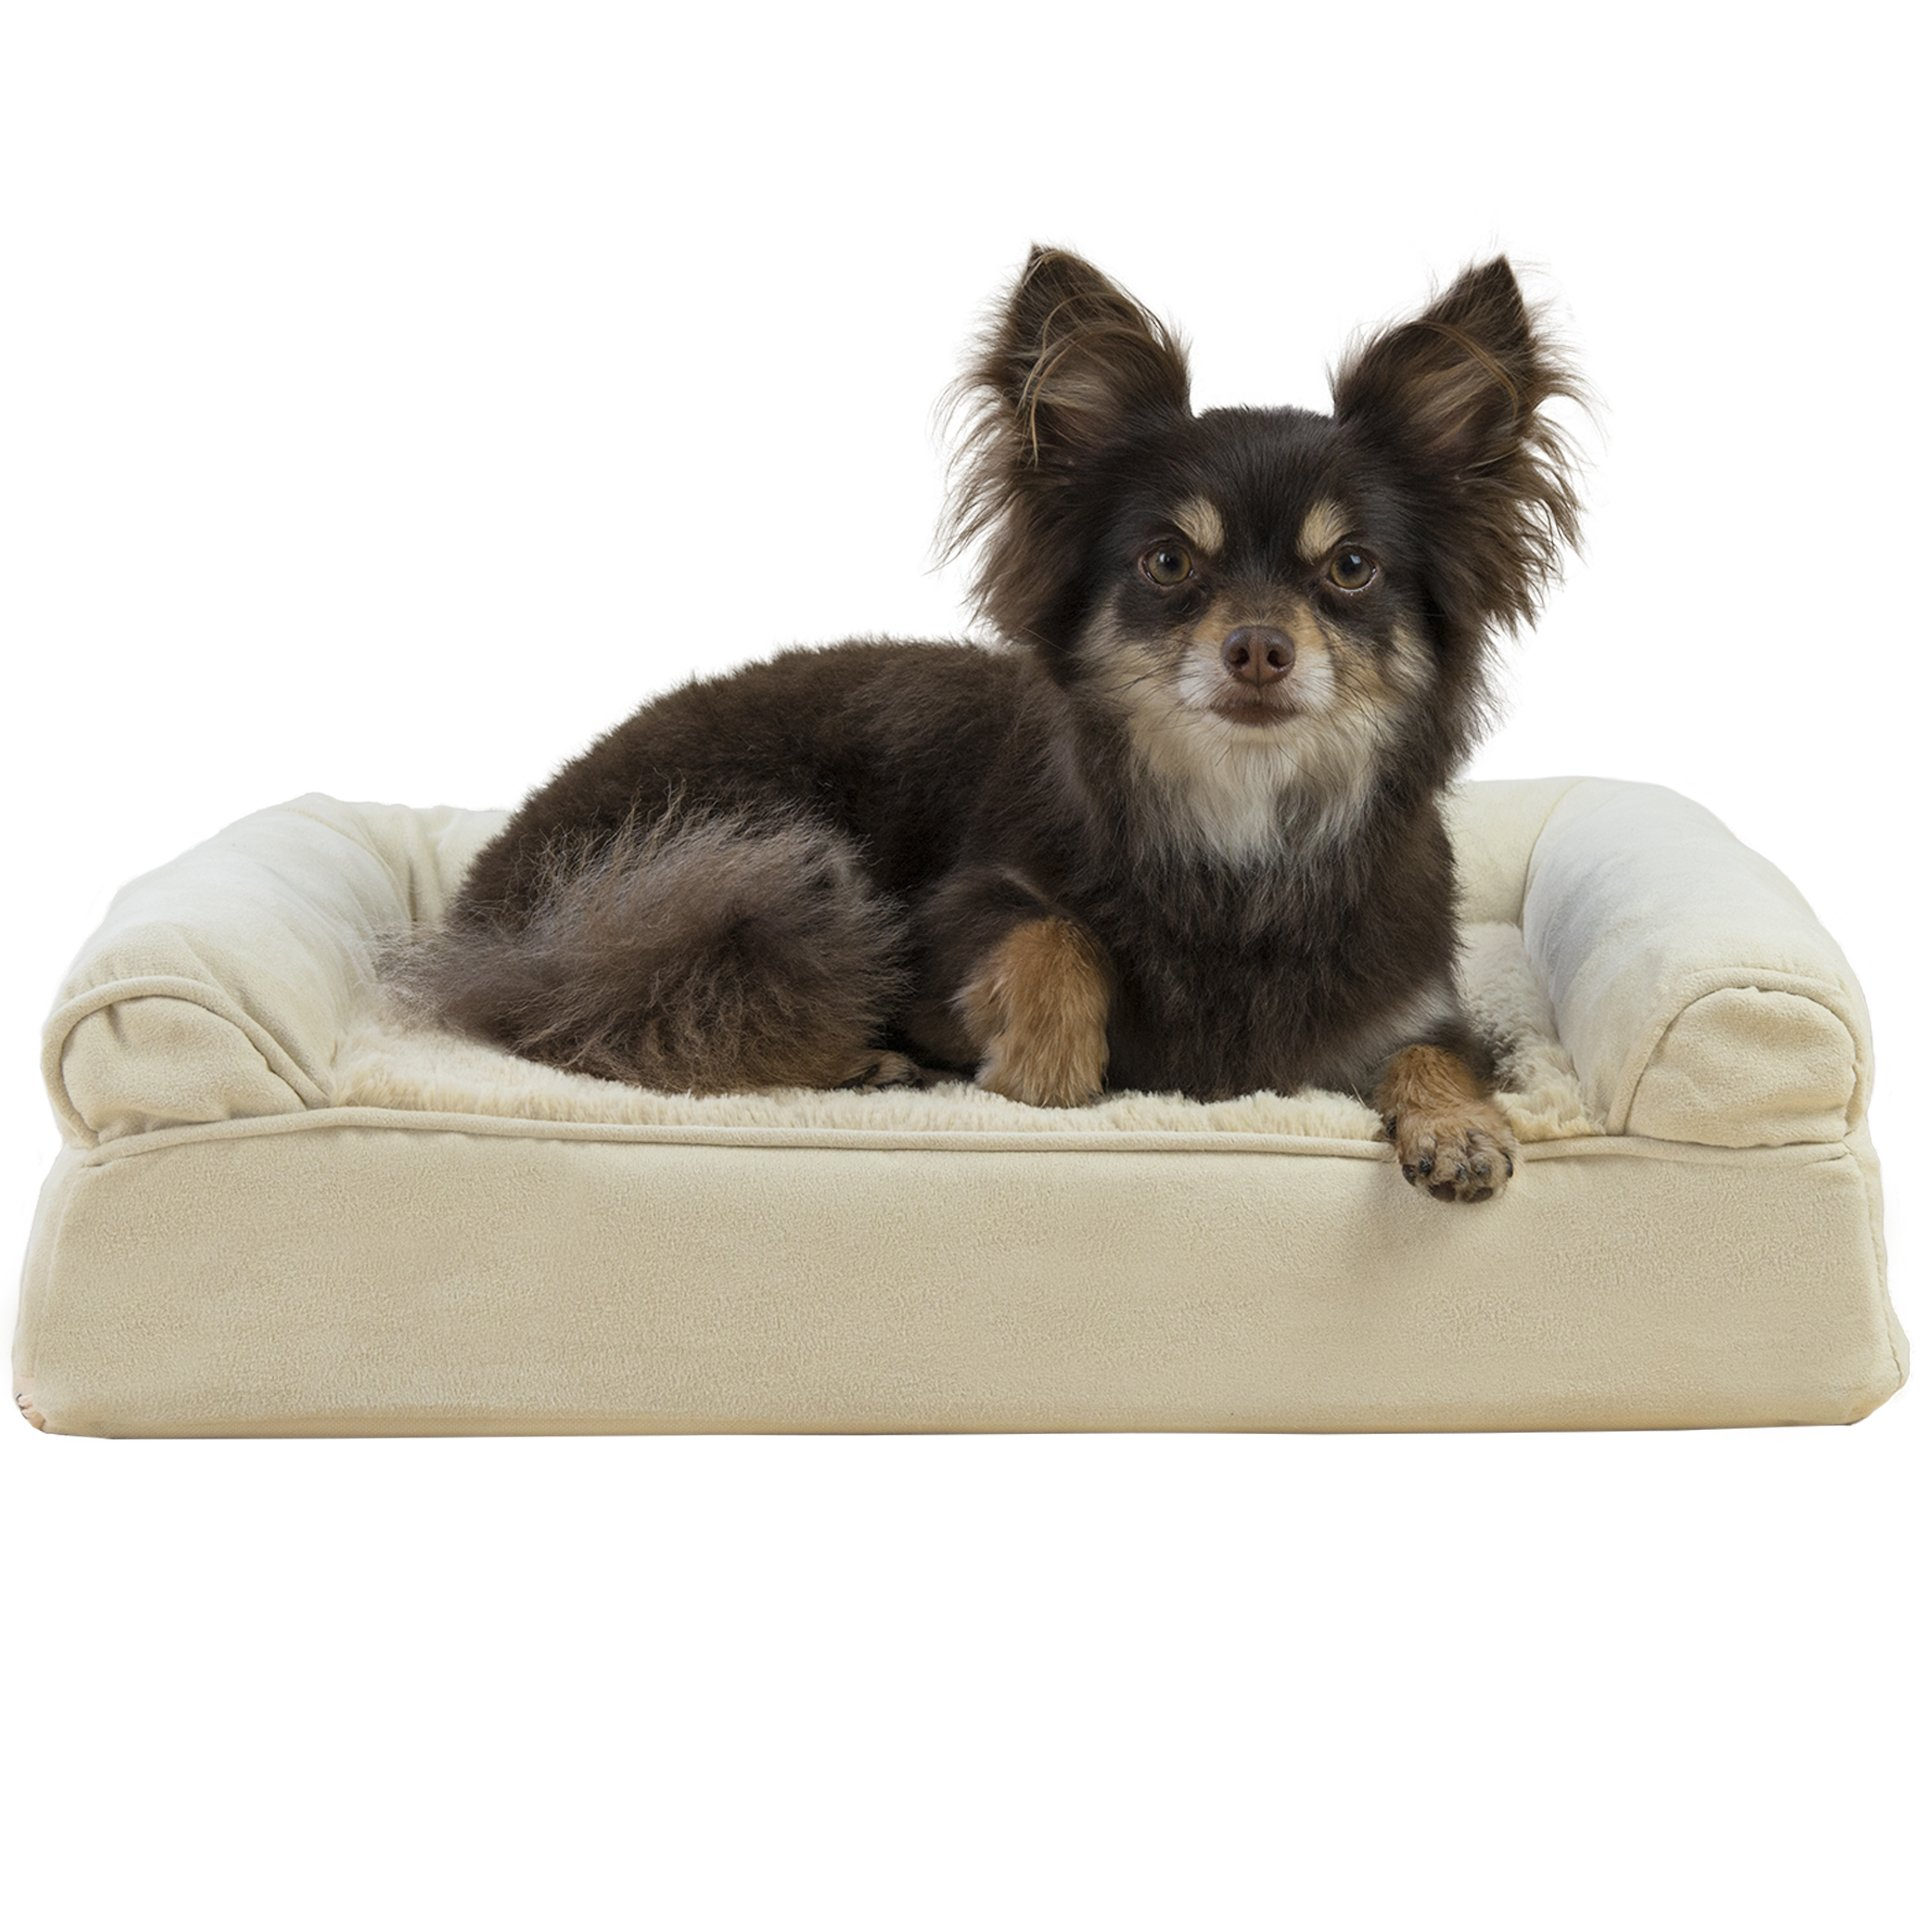 Furhaven Pet Dog Bed   Orthopedic Ultra Plush Sofa-Style Couch Pet Bed for Dogs & Cats, Clay, Small